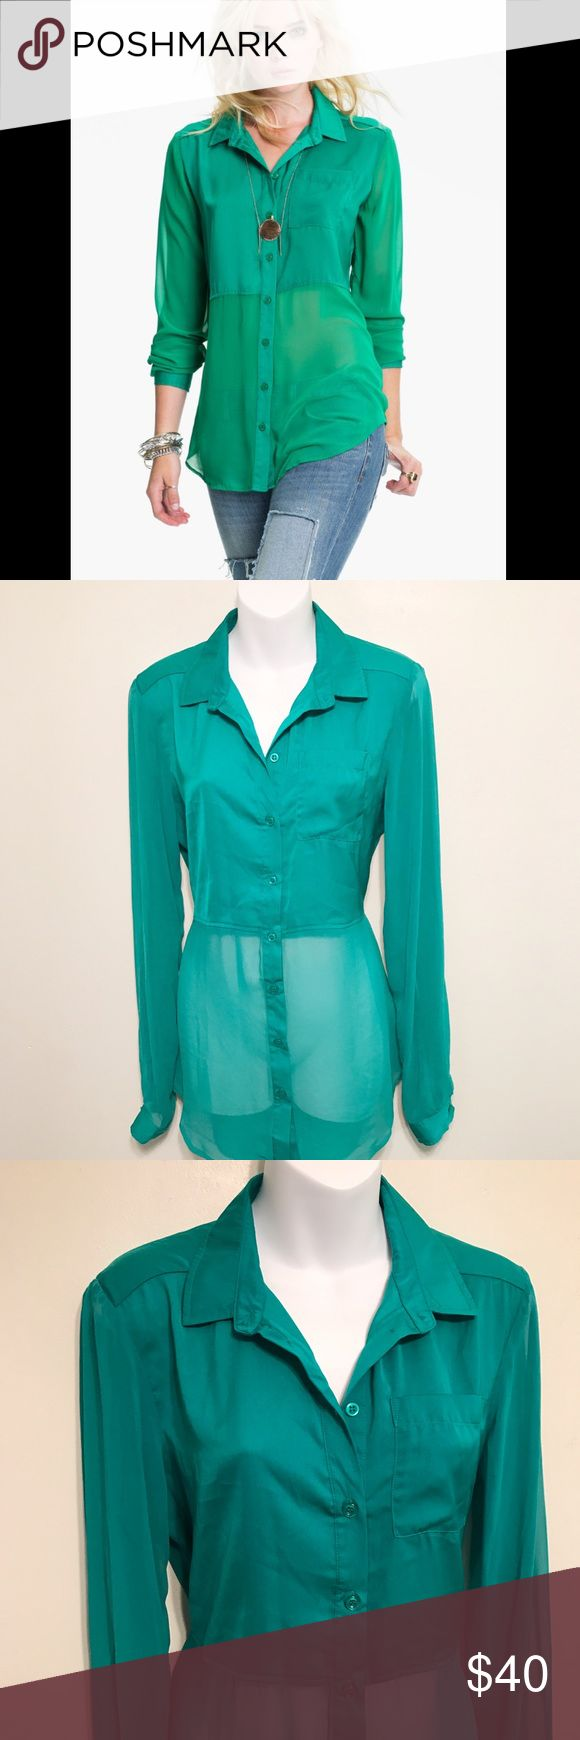 """NWT Free People The Best Of Both Worlds Blouse A solid-satin cropped body and collar define a chic, oversized button-front shirt. Sheer sleeves and panels to the hem add a chic touch to the on-trend yet easy-to-wear style. Single-button cuffs. Approx. length from shoulder: front 30""""; back 35"""". Polyester; machine wash. Size small 4-6 Length- 31"""" Chest- 21"""" pit to pit Arm length- 19"""" pit to opening  One button on each cuff Eight buttons up the front  One chest pocket  Slit open in the back…"""